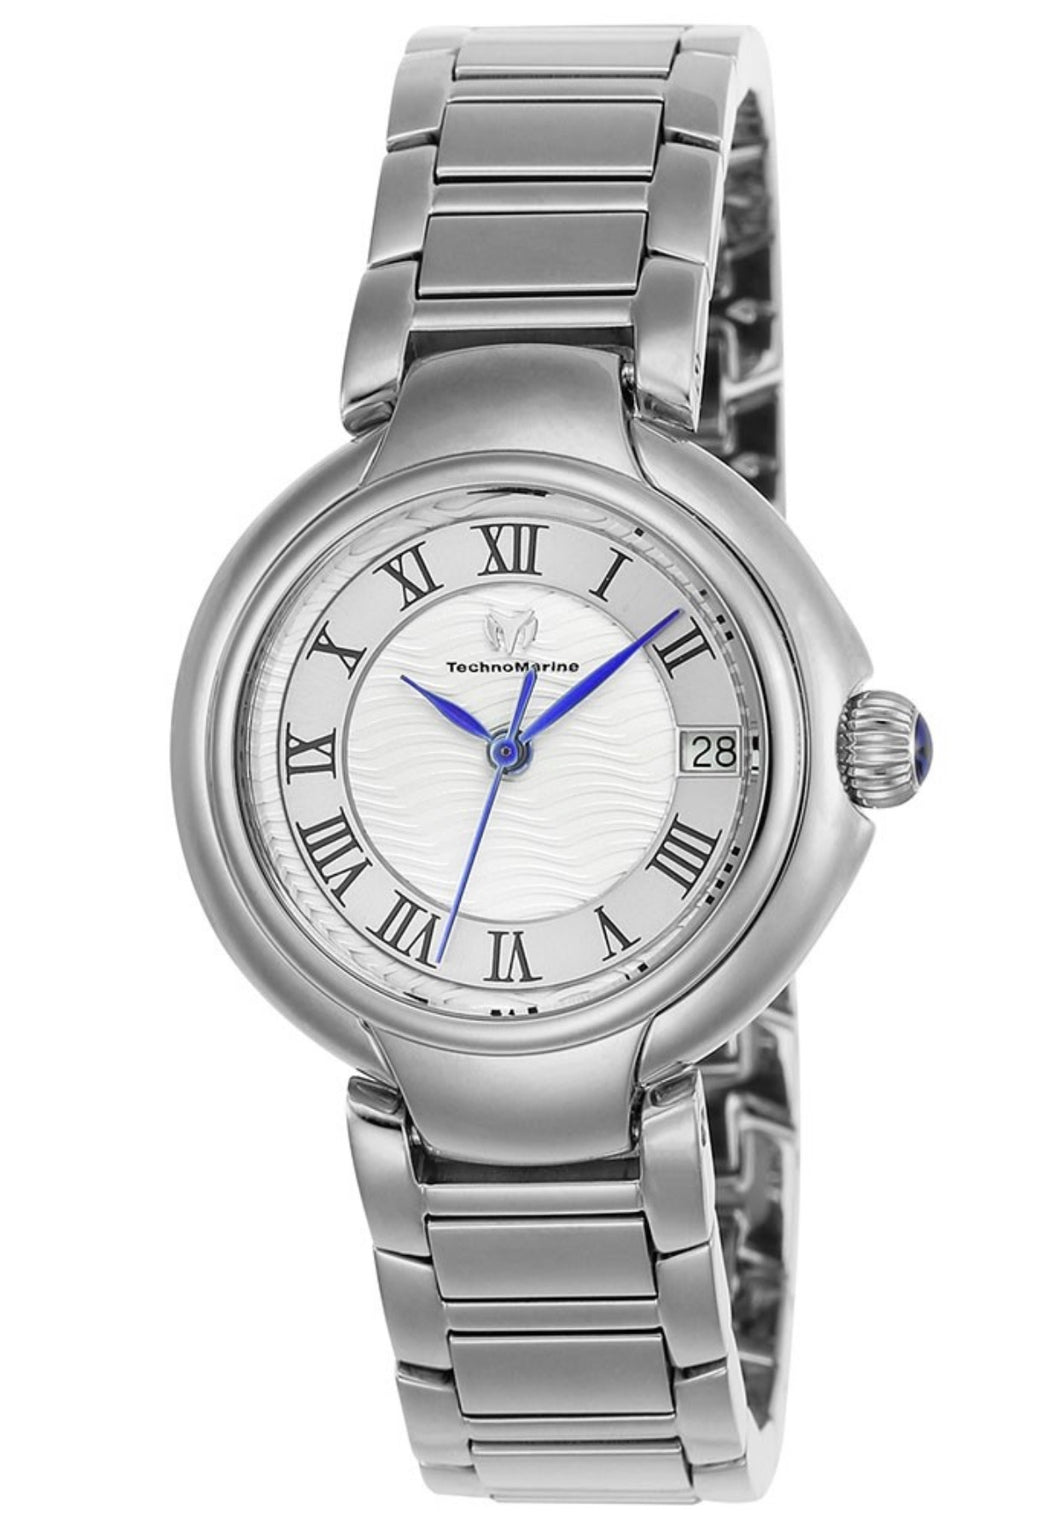 TECHNOMARINE SEA WOMENS QUARTZ 32MM STAINLESS STEEL CASE SILVER DIAL - MODEL TM-716006 - Boutique Watches & More